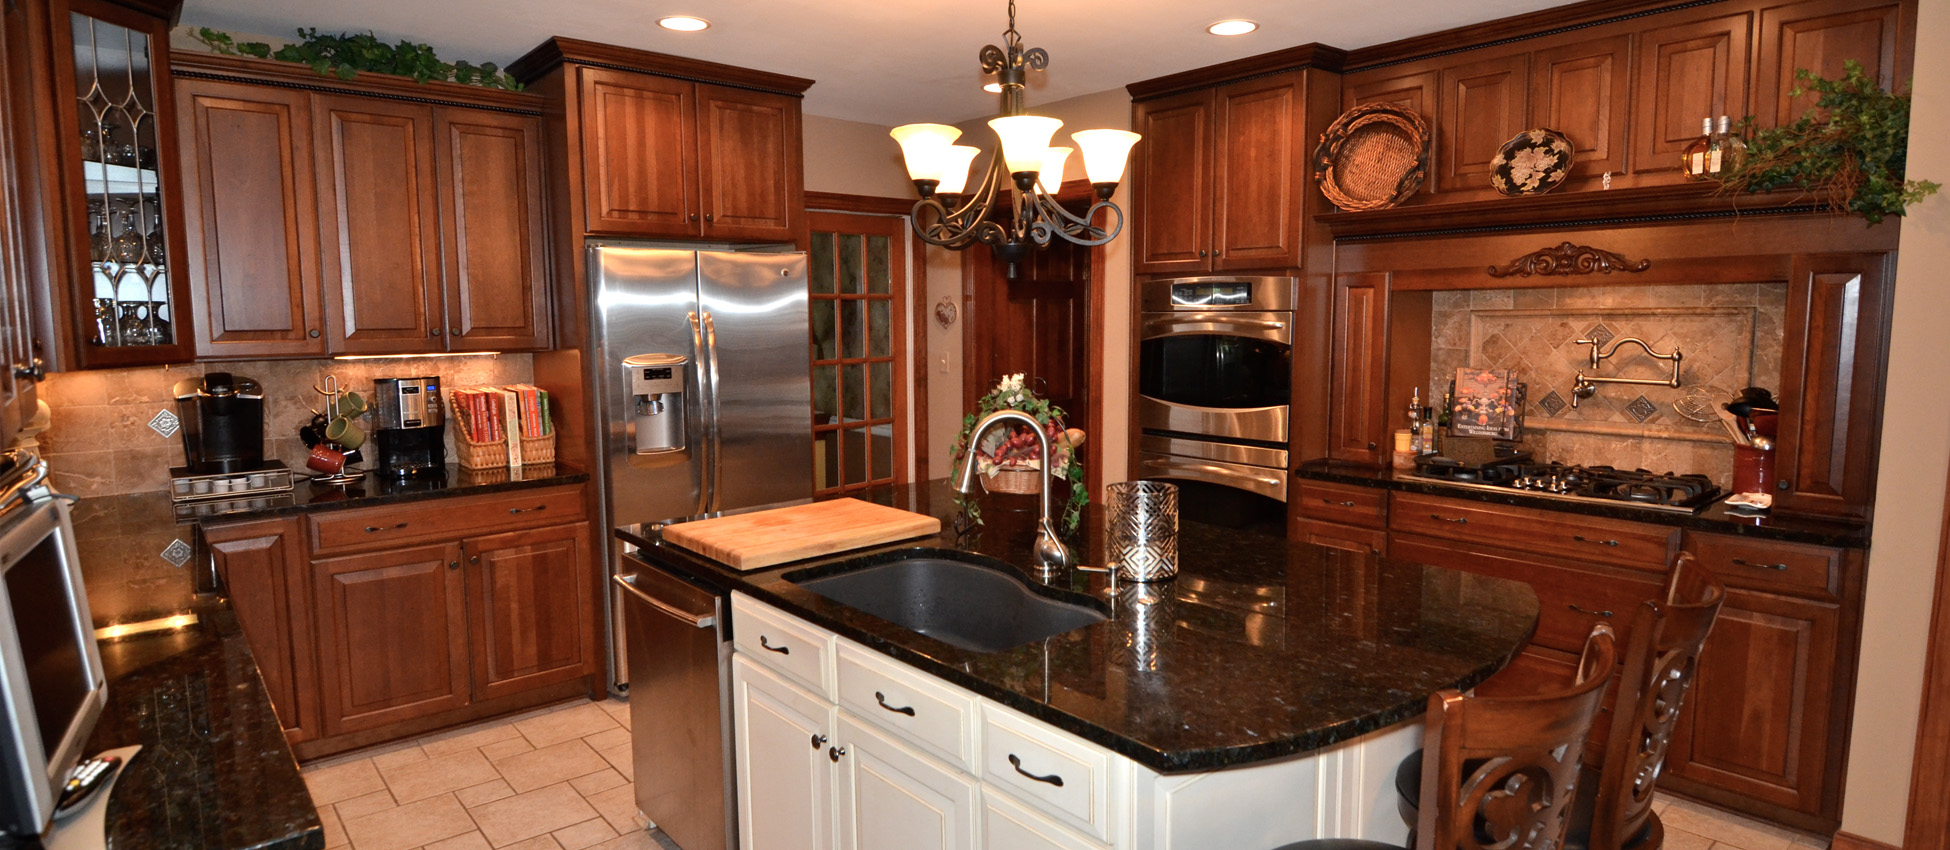 Louisville ky remodel contractor for Kitchen remodeling louisville ky